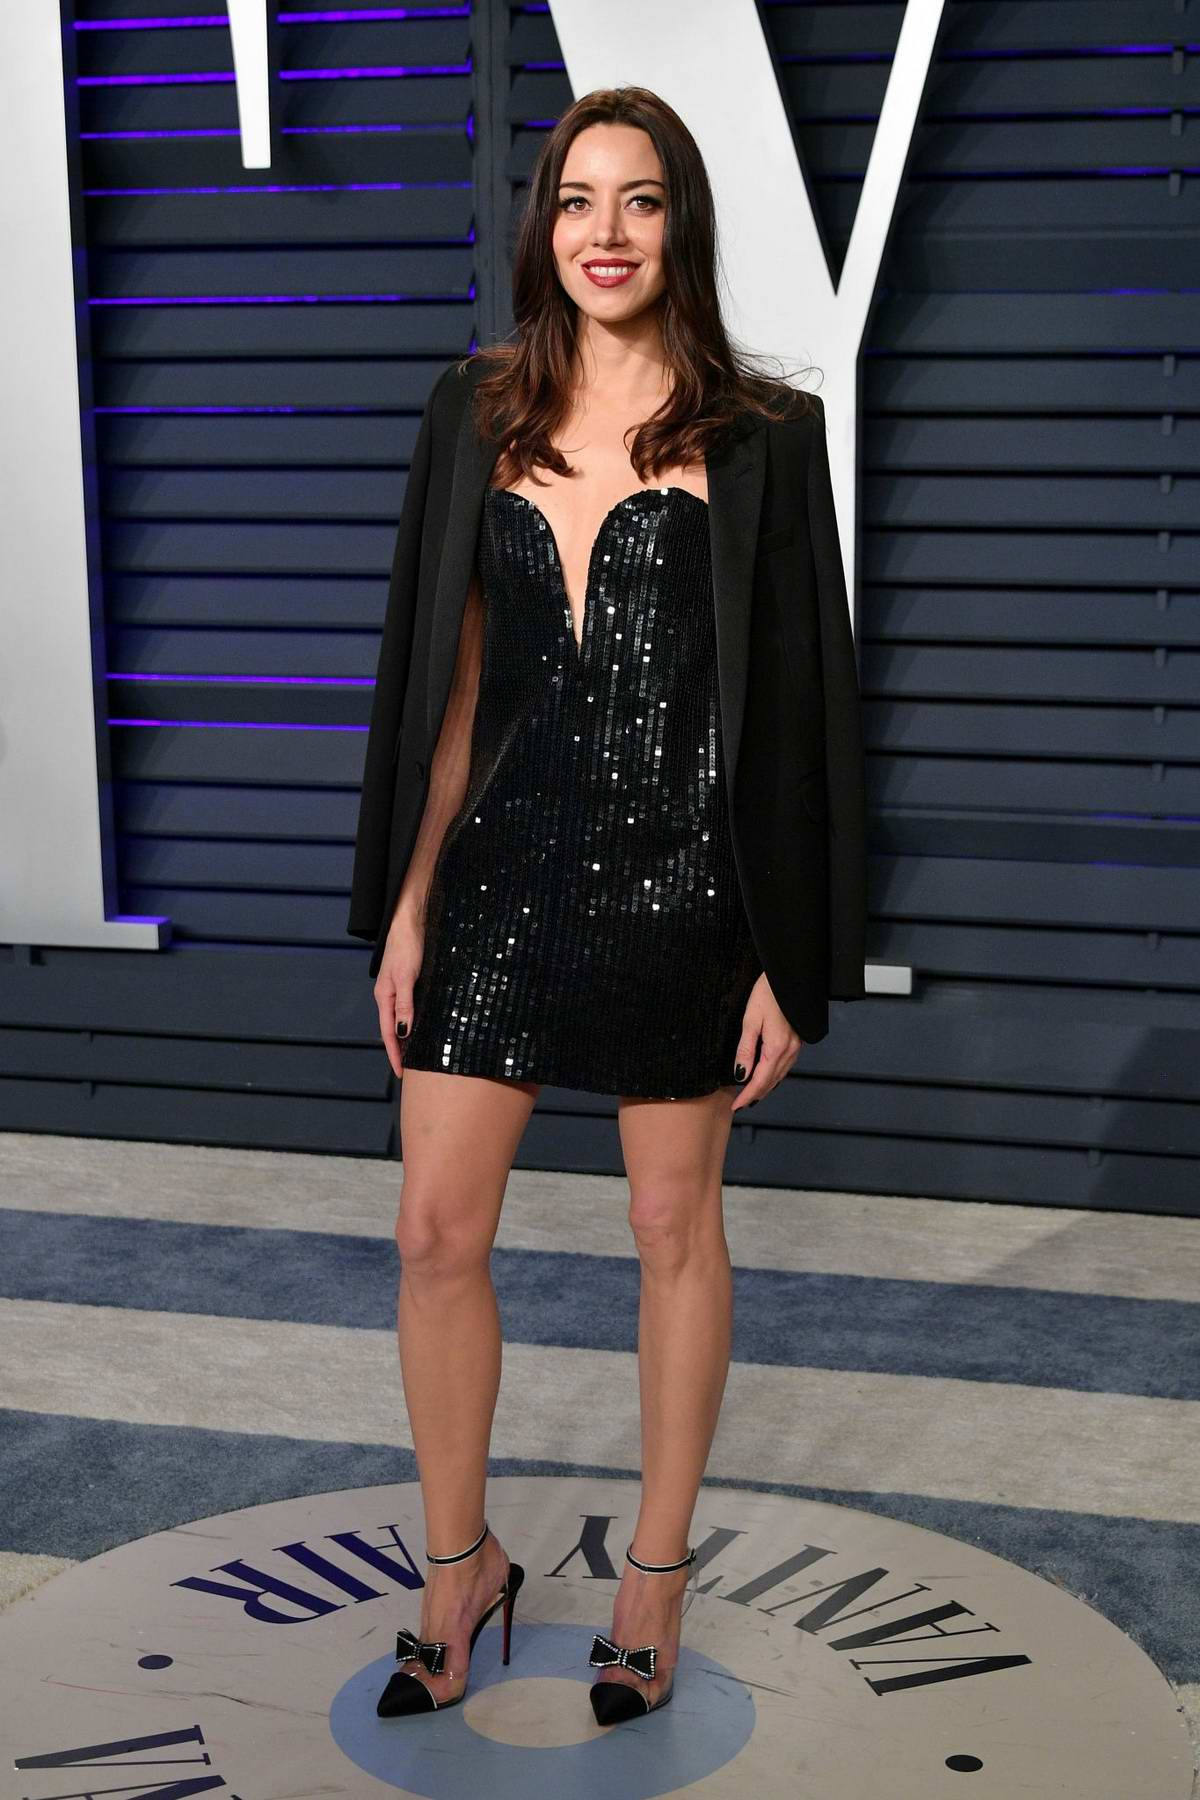 Aubrey Plaza attends the Vanity Fair Oscar Party at Wallis Annenberg Center for the Performing Arts in Beverly Hills, California